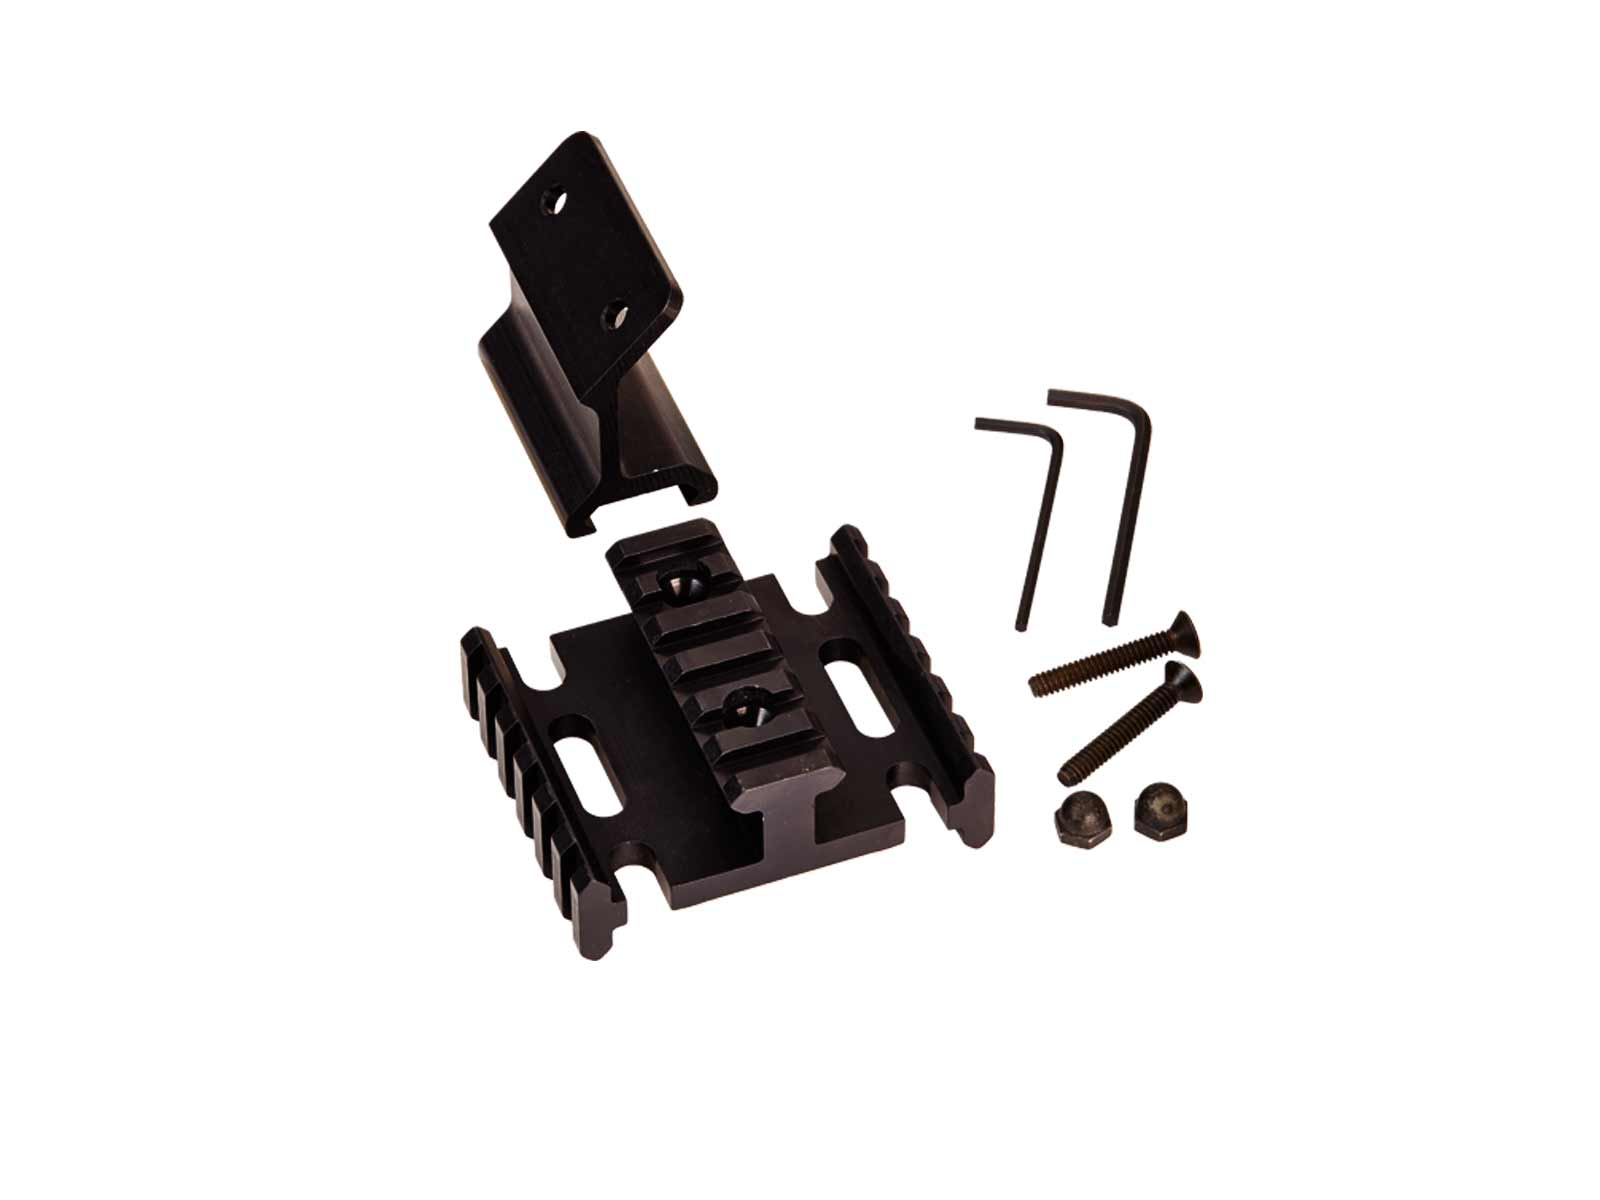 Tac Bracket with Quiver Attachment (order 7009)